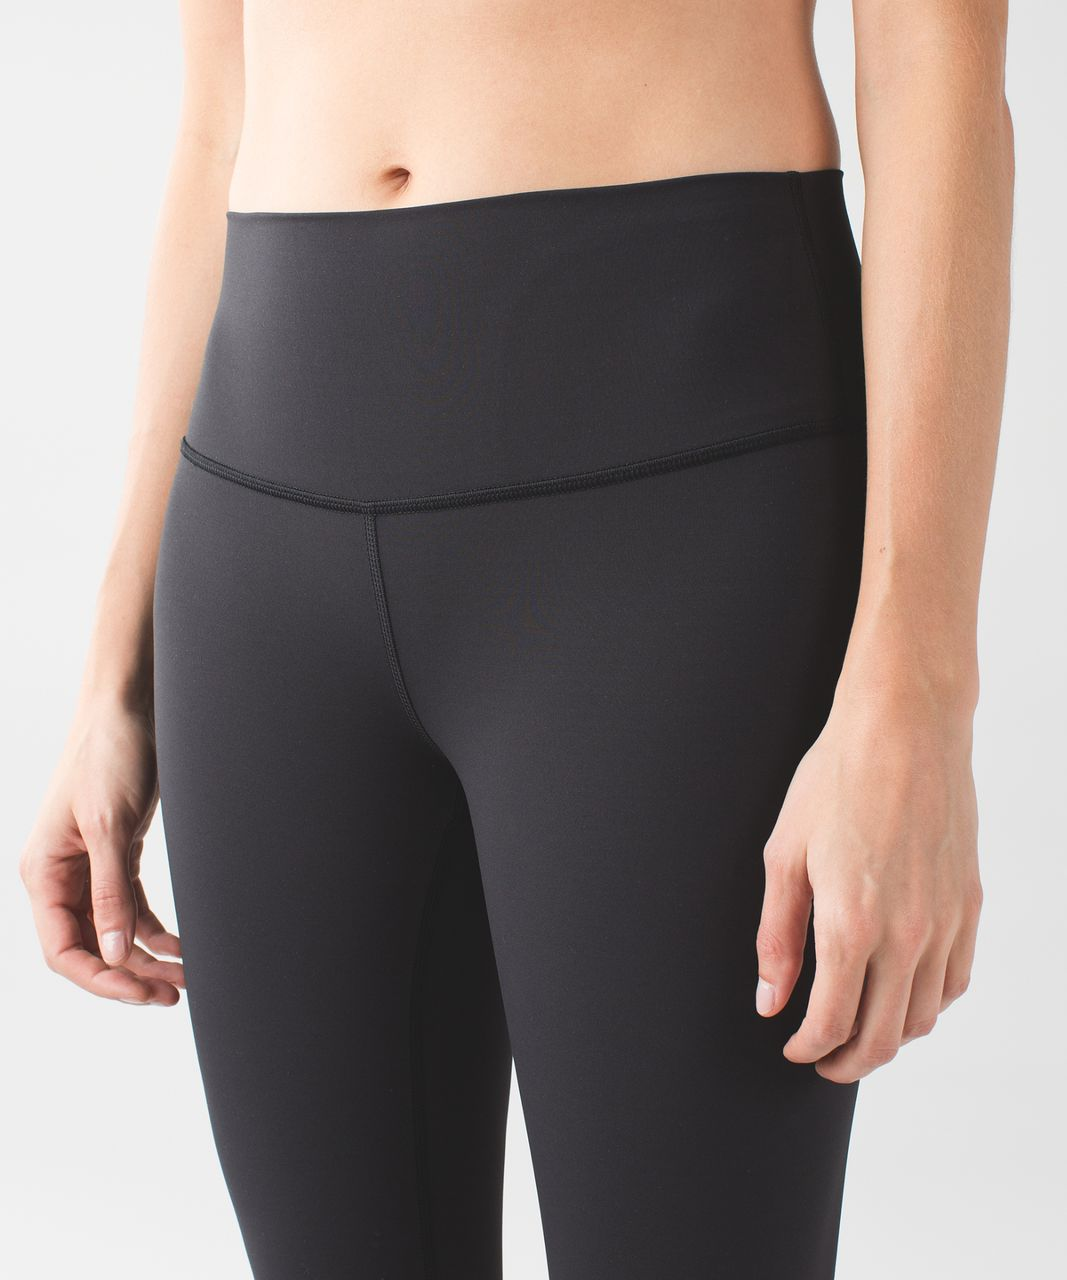 Lululemon High Times Pant (Brushed) - Black